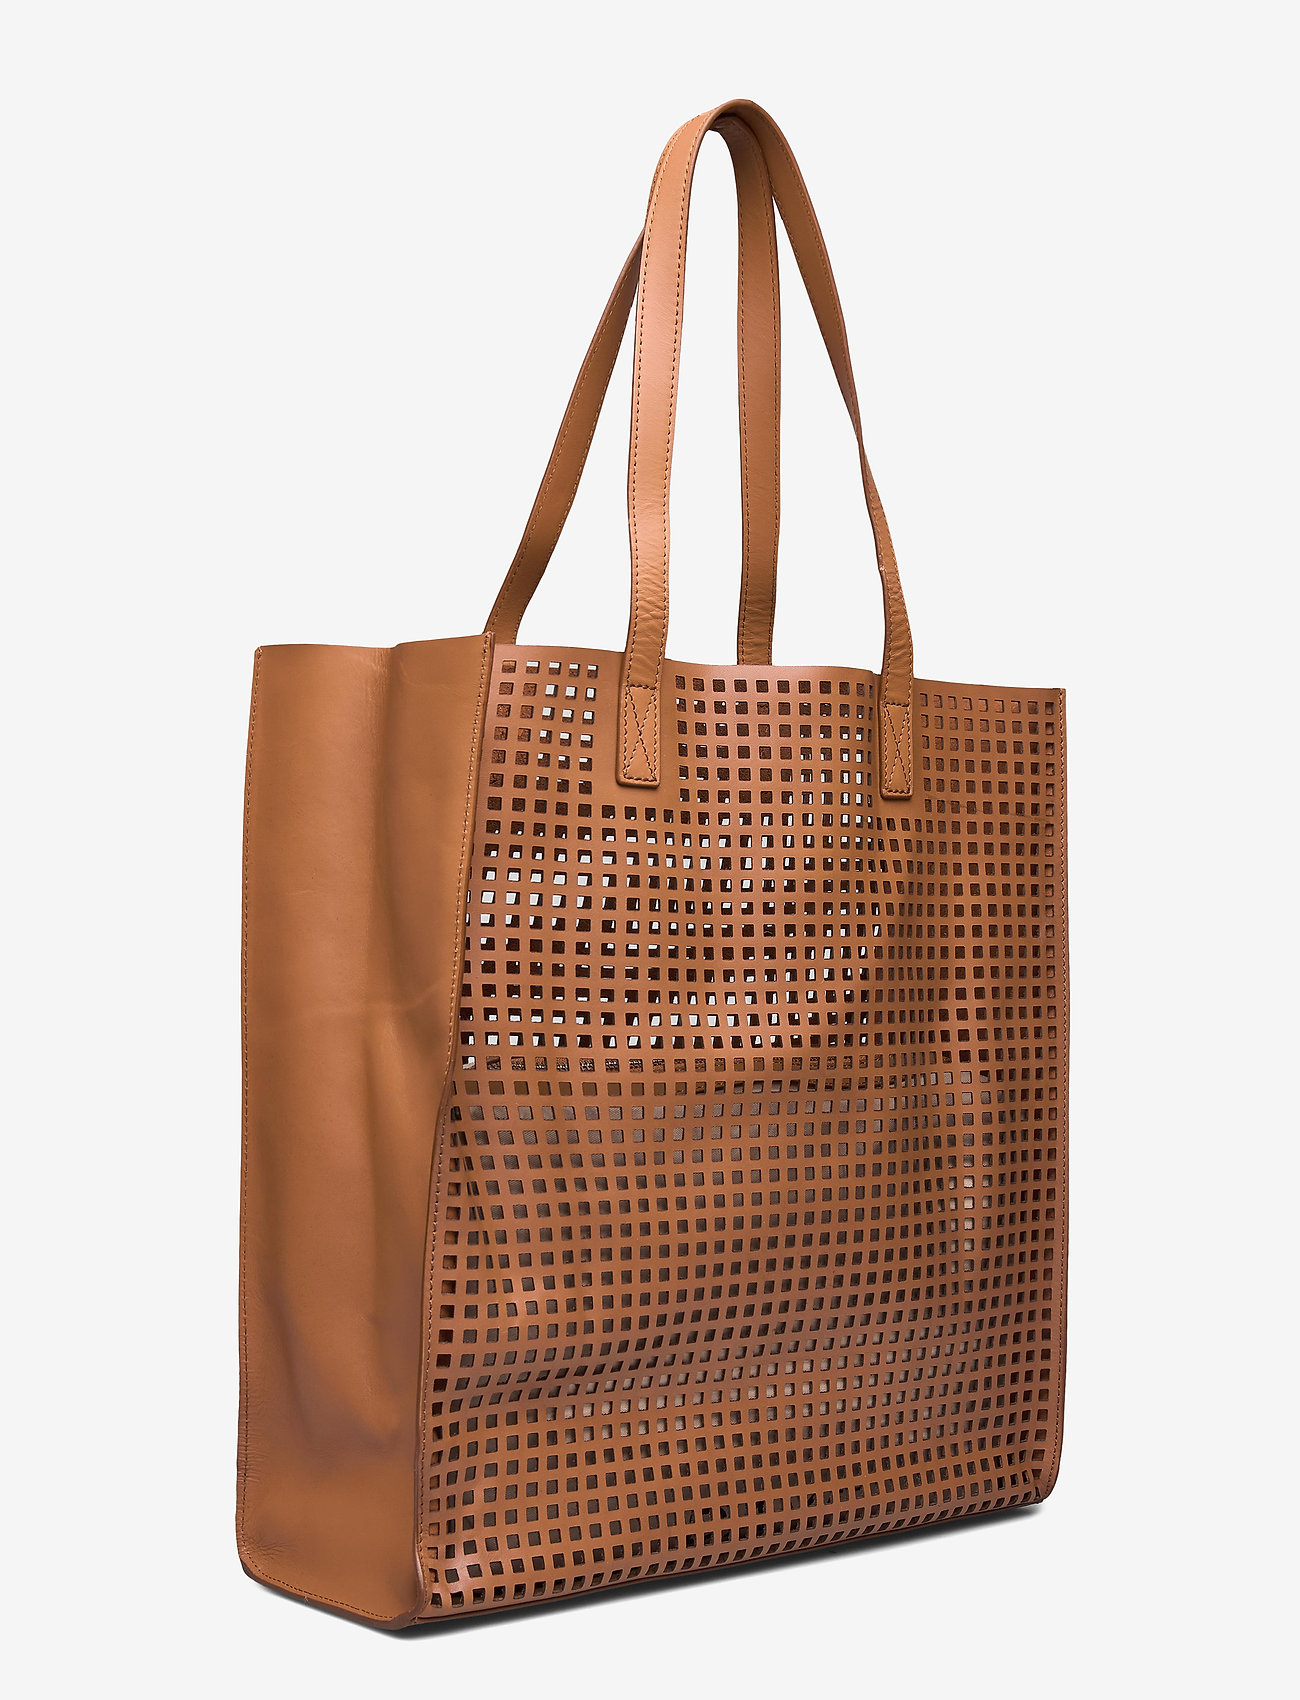 DAY et Day Cube Perforation Tote - Torby na zakupy CAMEL BEIGE - Torby